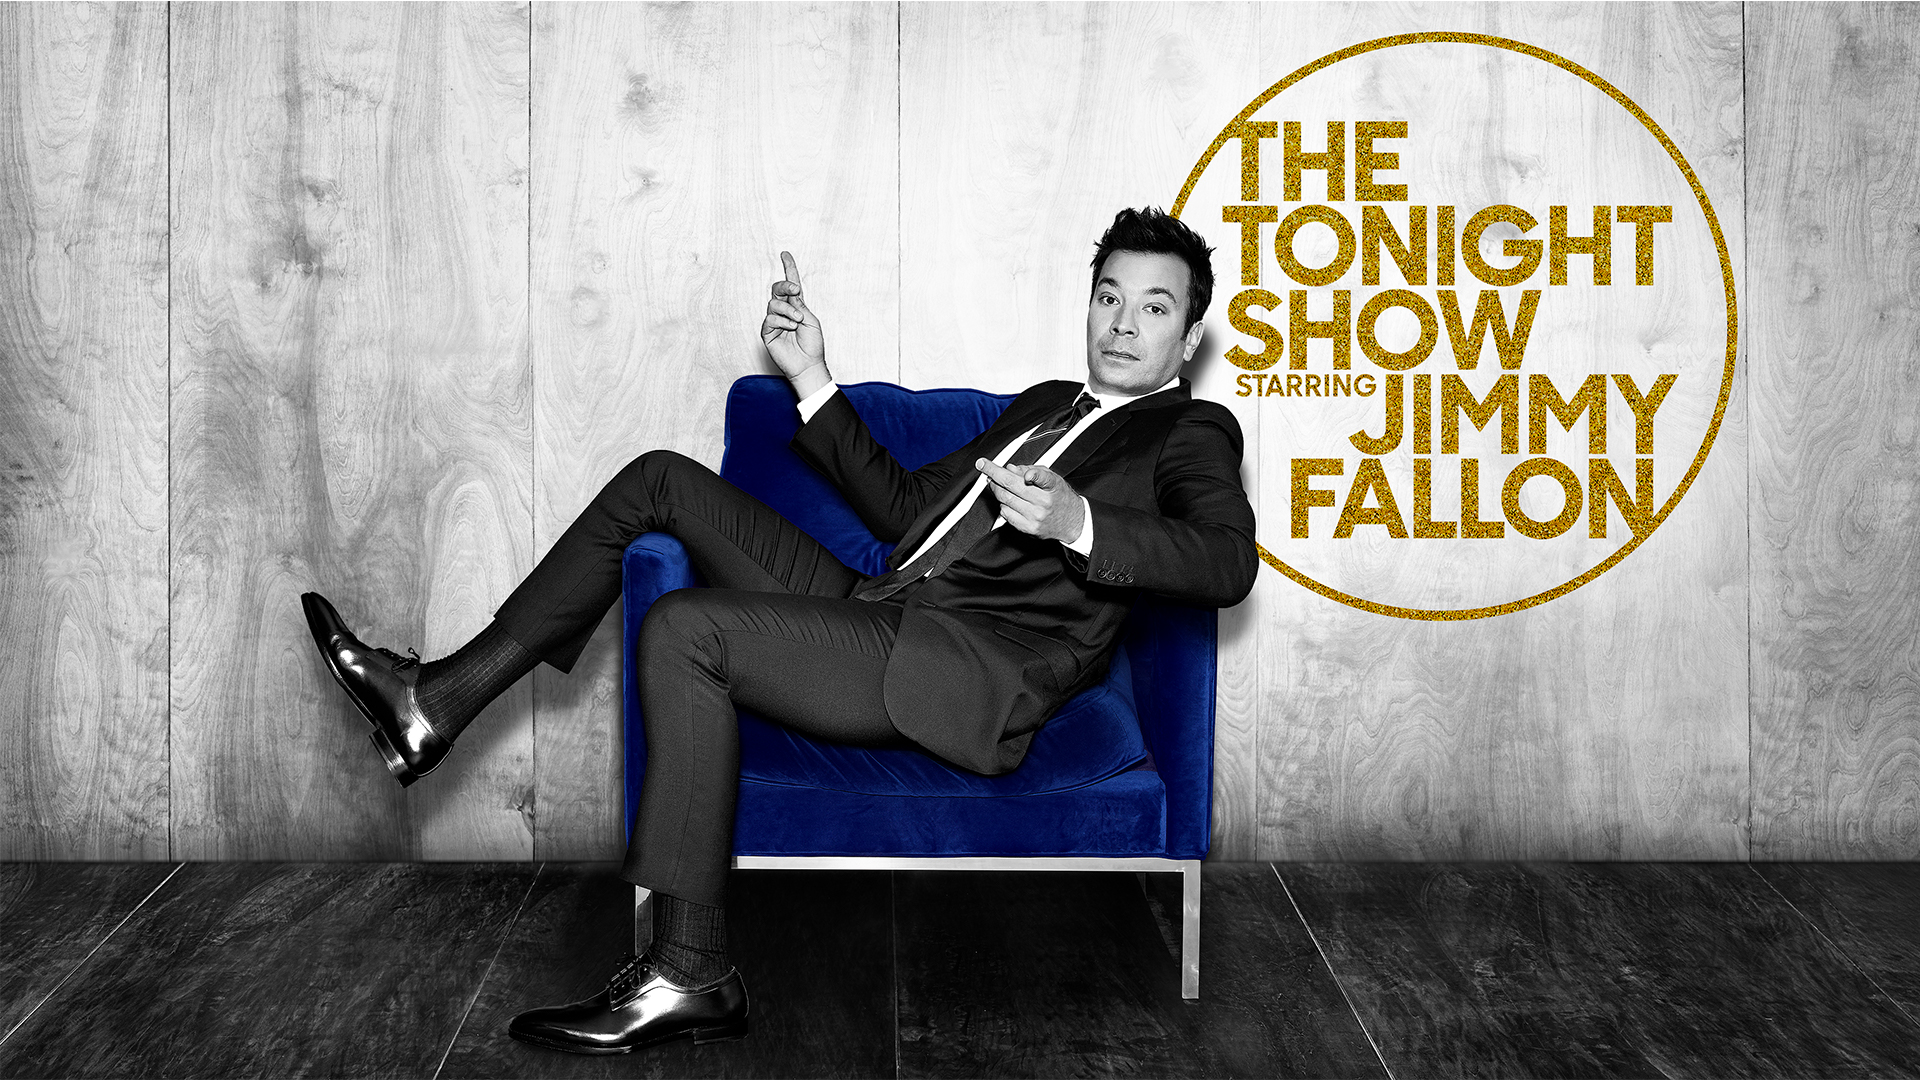 How To Get Tickets To The Tonight Show Starring Jimmy Fallon